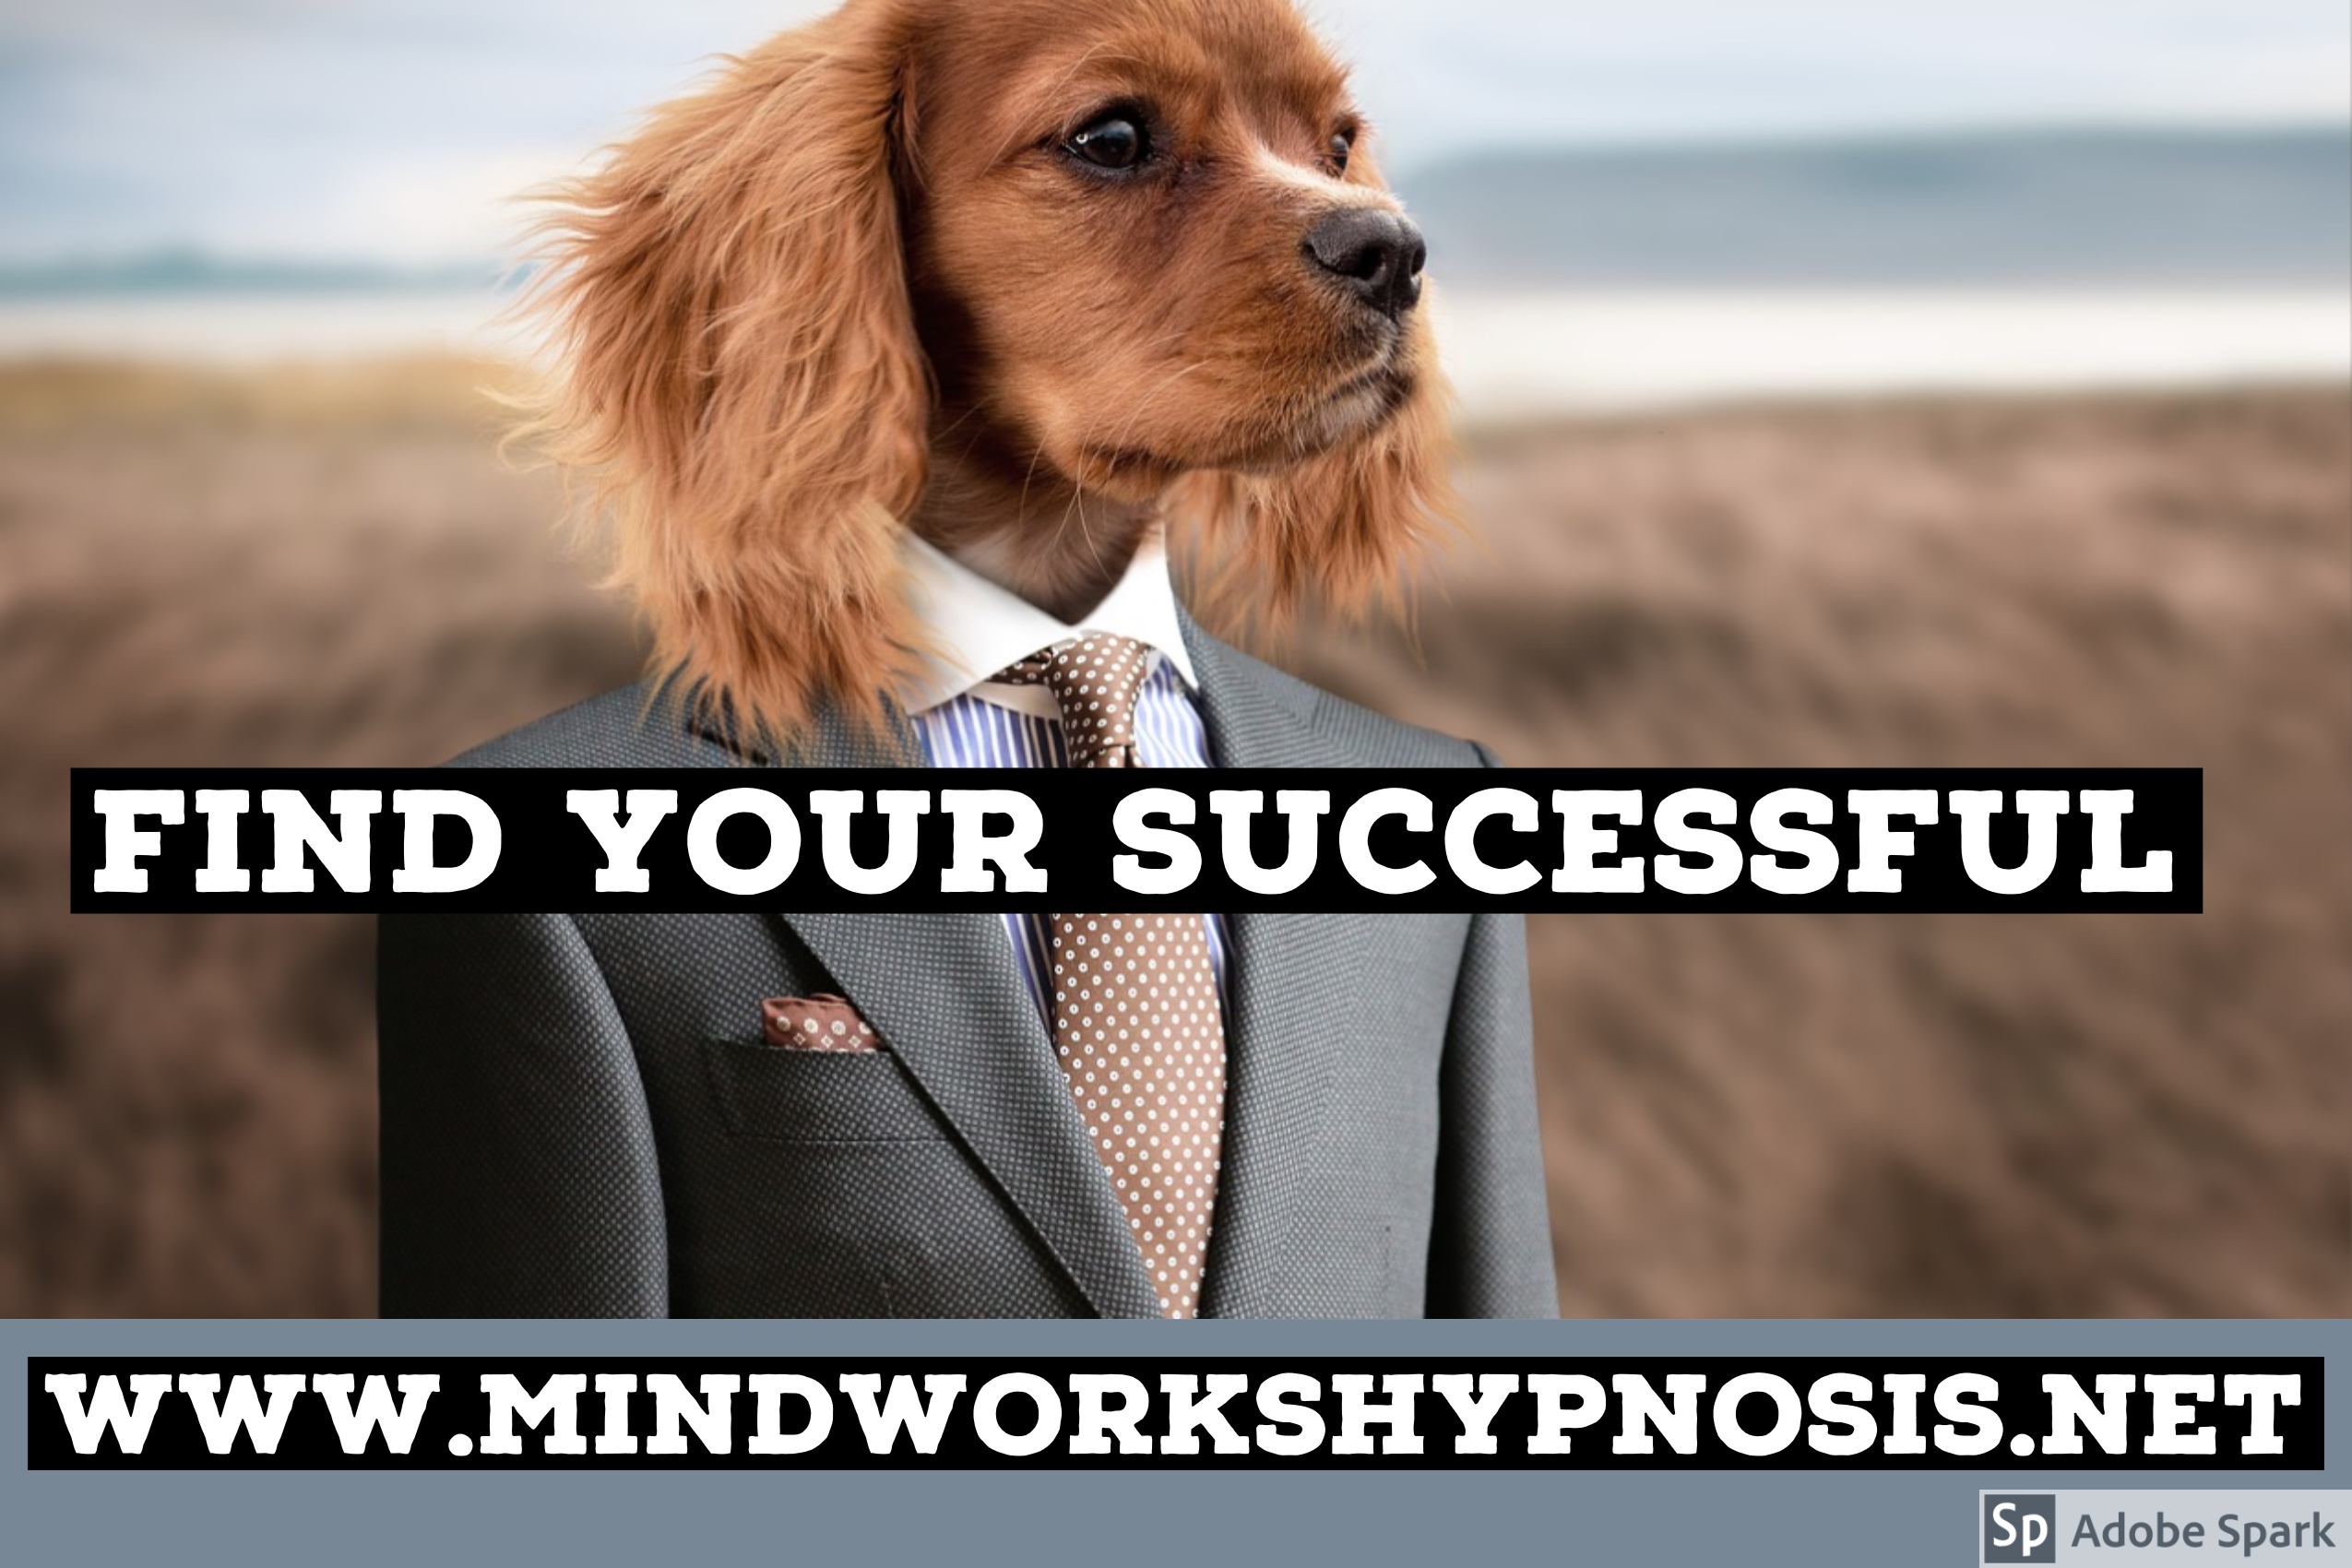 Find Your Successful with Mindworks Hypnosis & NLP.